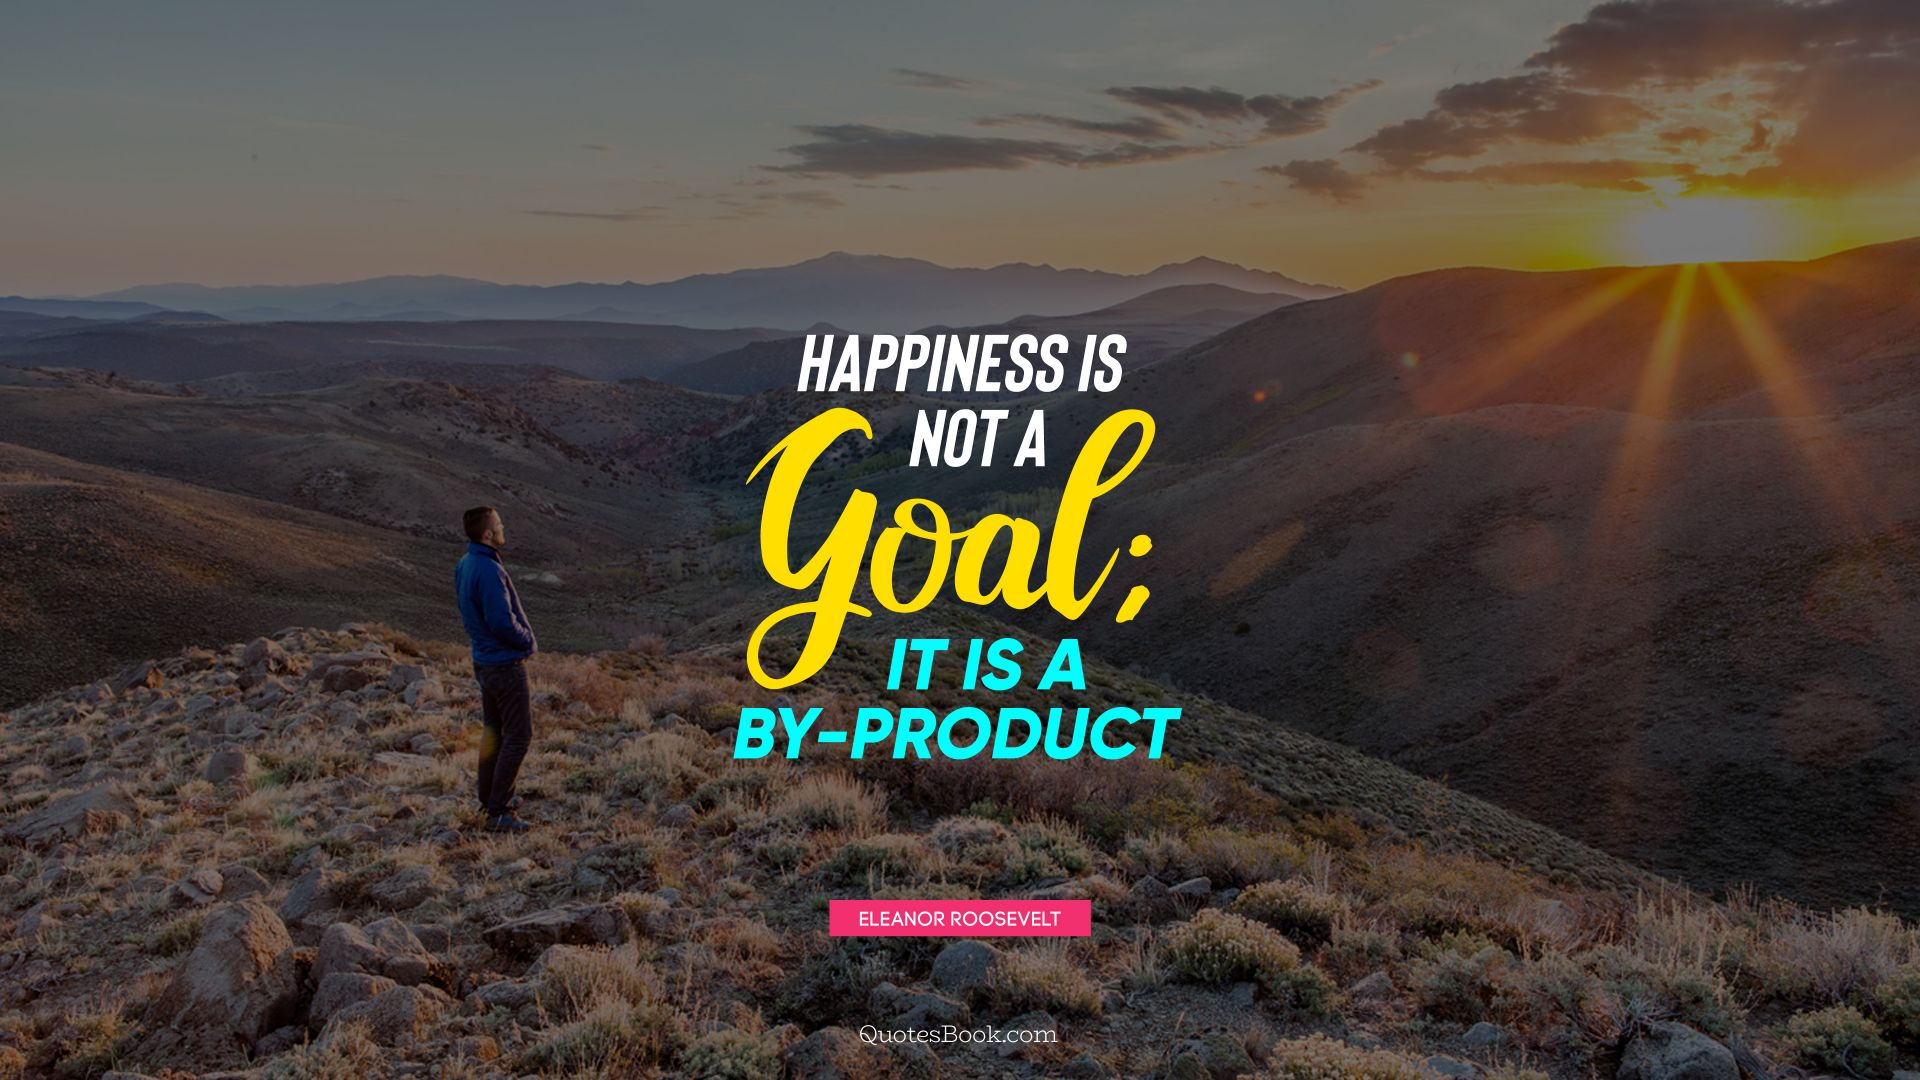 Happiness is not a goal; it is a by-product. - Quote by Eleanor Roosevelt